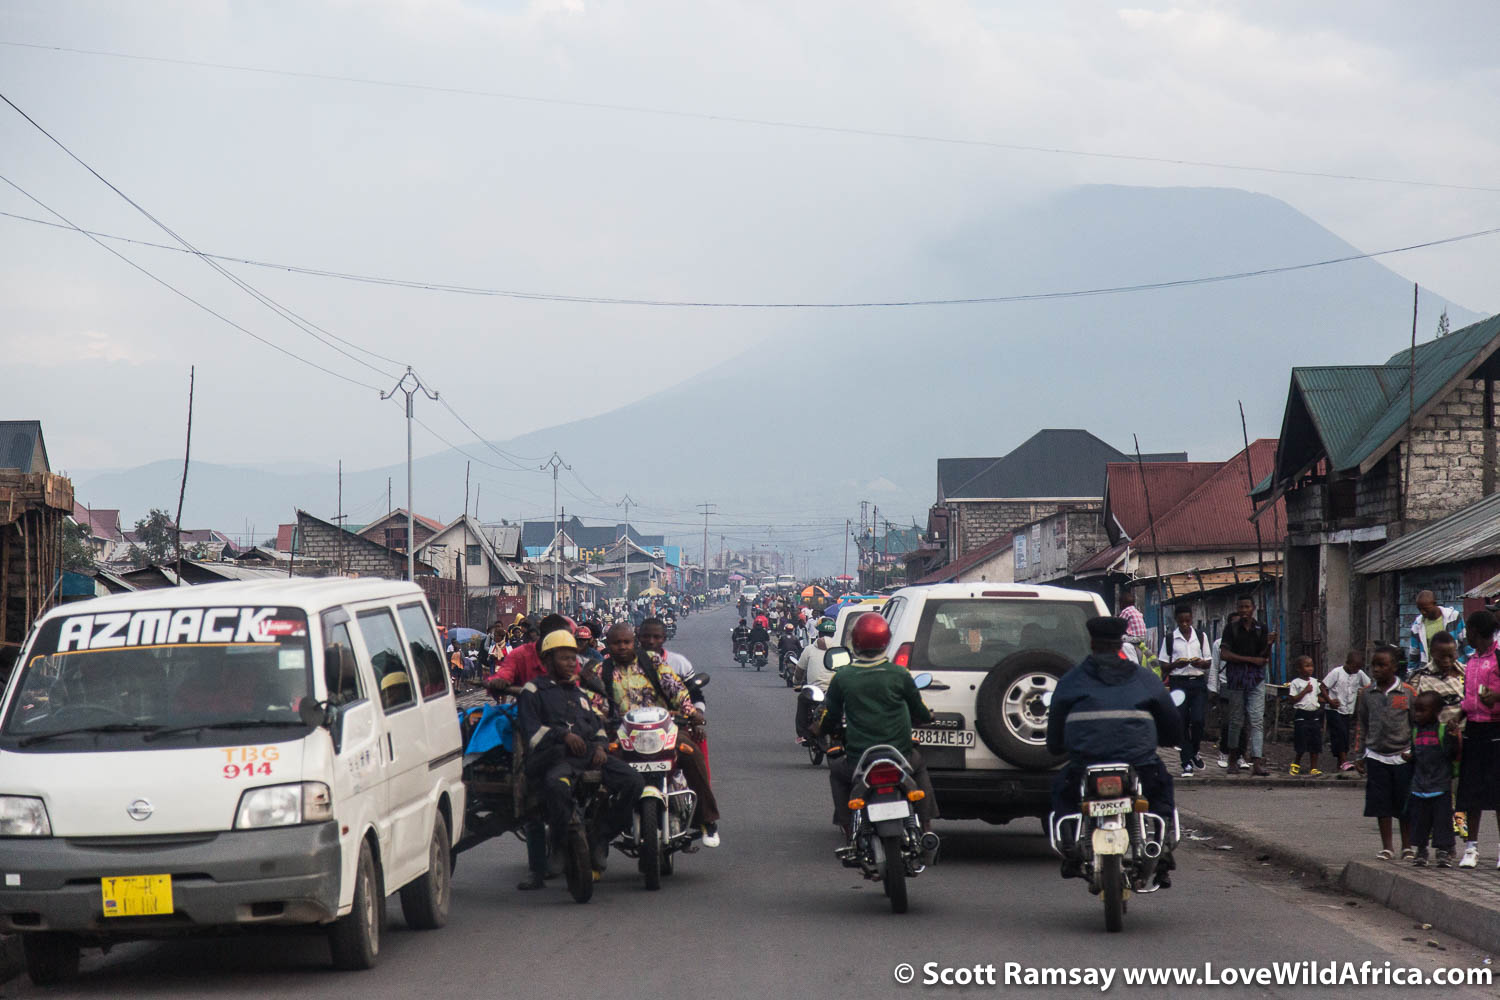 Goma is one of the Democratic Republic of Congo's larger cities